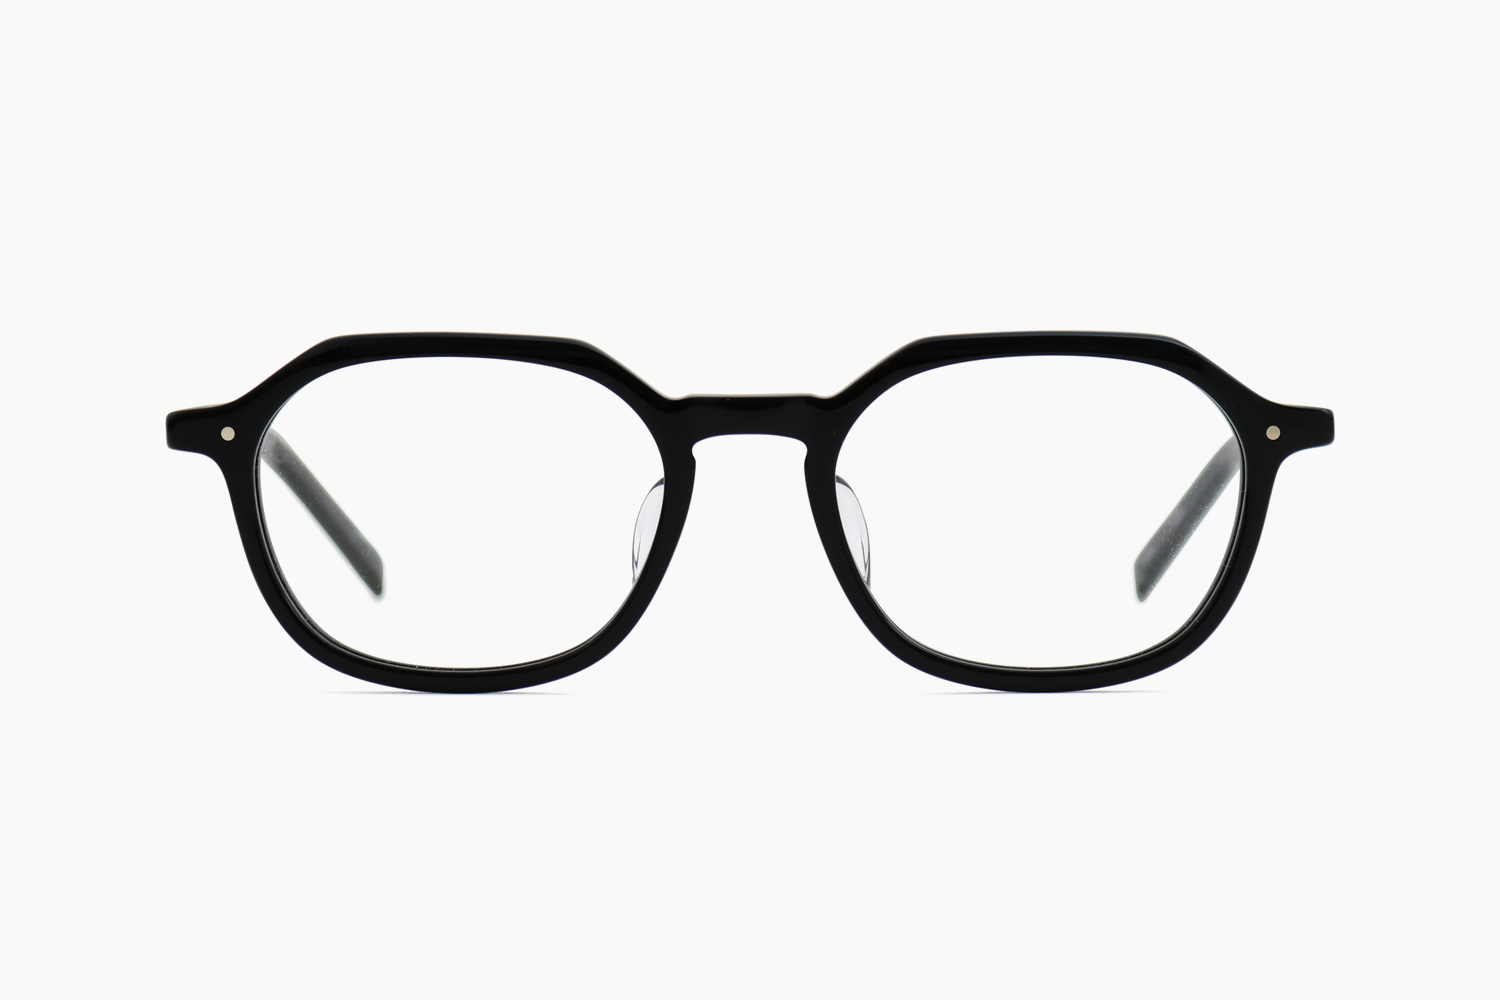 A/a-CRS – BLK|ARCH OPTICAL